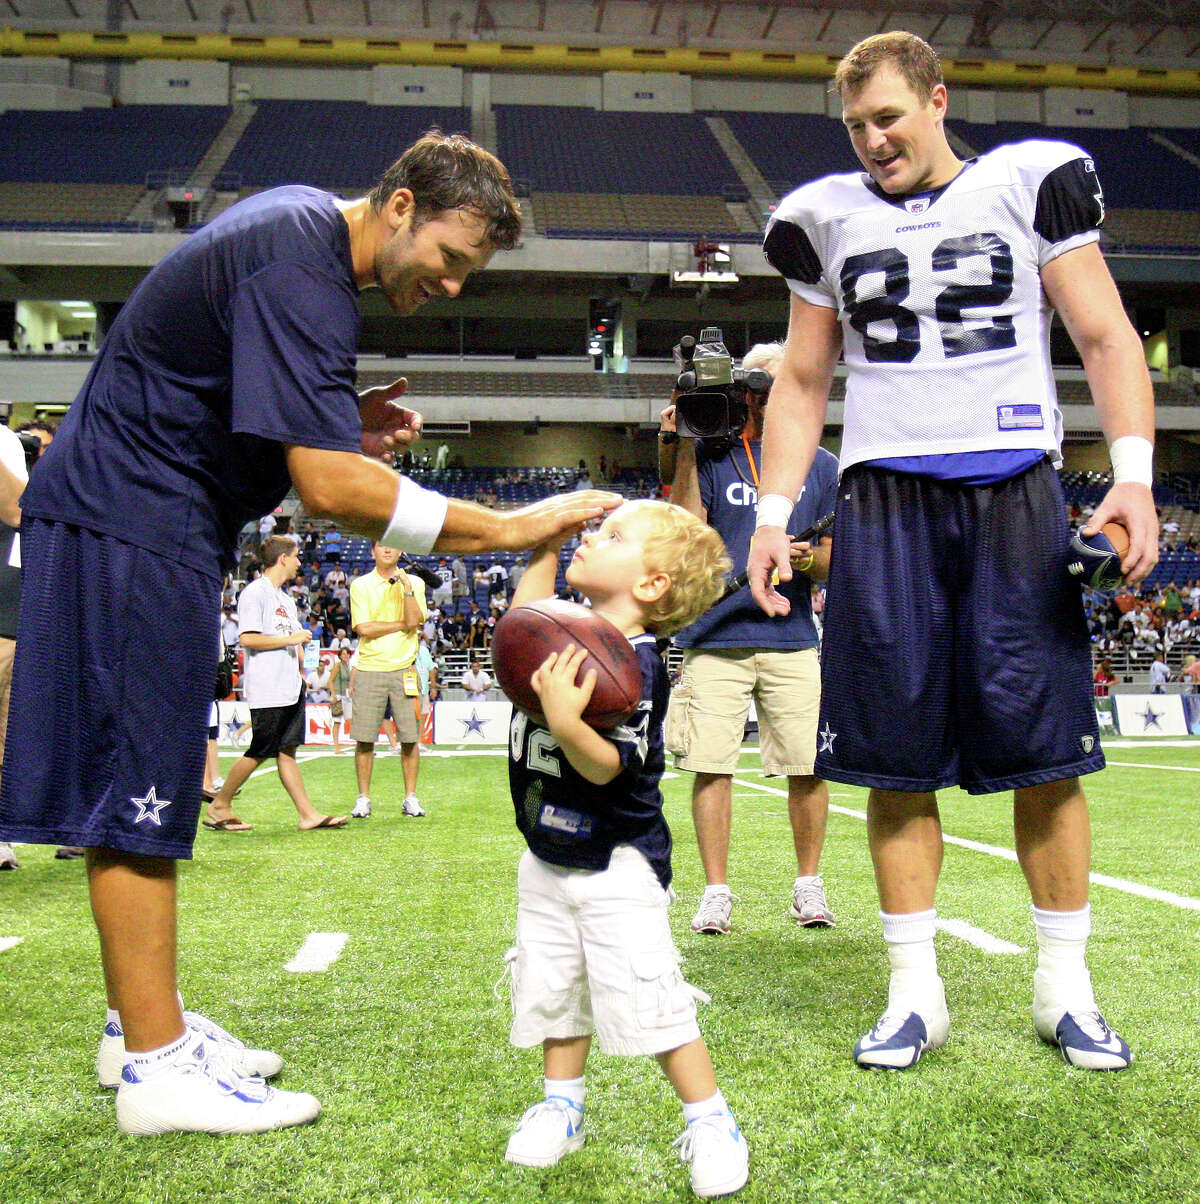 FOR SPORTS - Dallas Cowboys' quarterback Tony Romo (from left) high-fives CJ Witten as his dad Dallas Cowboys' tight end Jason Witten looks after afternoon practice Saturday Aug. 8, 2009 at the Alamodome. (PHOTO BY EDWARD A. ORNELAS/eaornelas@express-news.net)